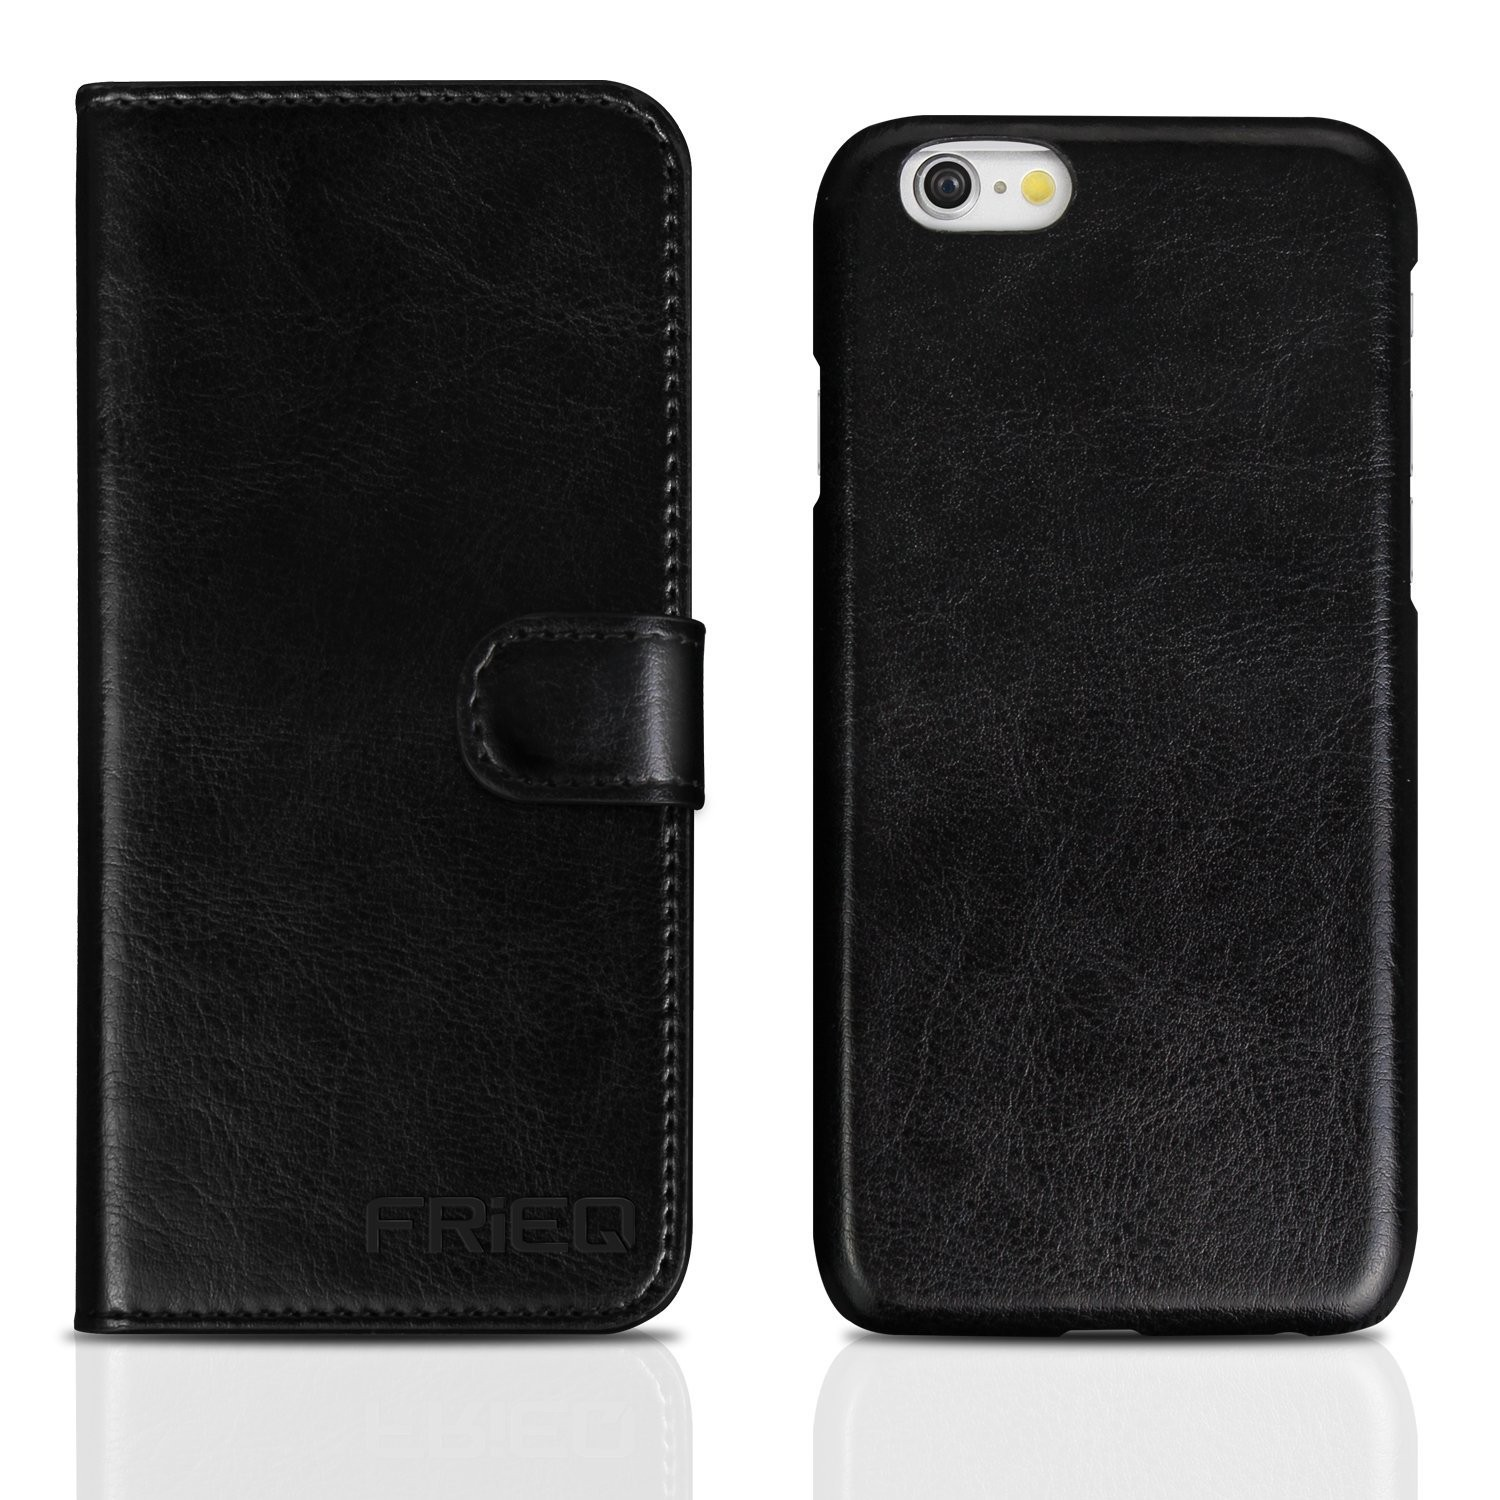 iPhone 6 Case, FRiEQ® Premium PU leather Wallet Case with Card Slots, ID Holders and Cash Compartment for iPhone 6 / iPhone 6s (4.7 inch) - Black, 2881007